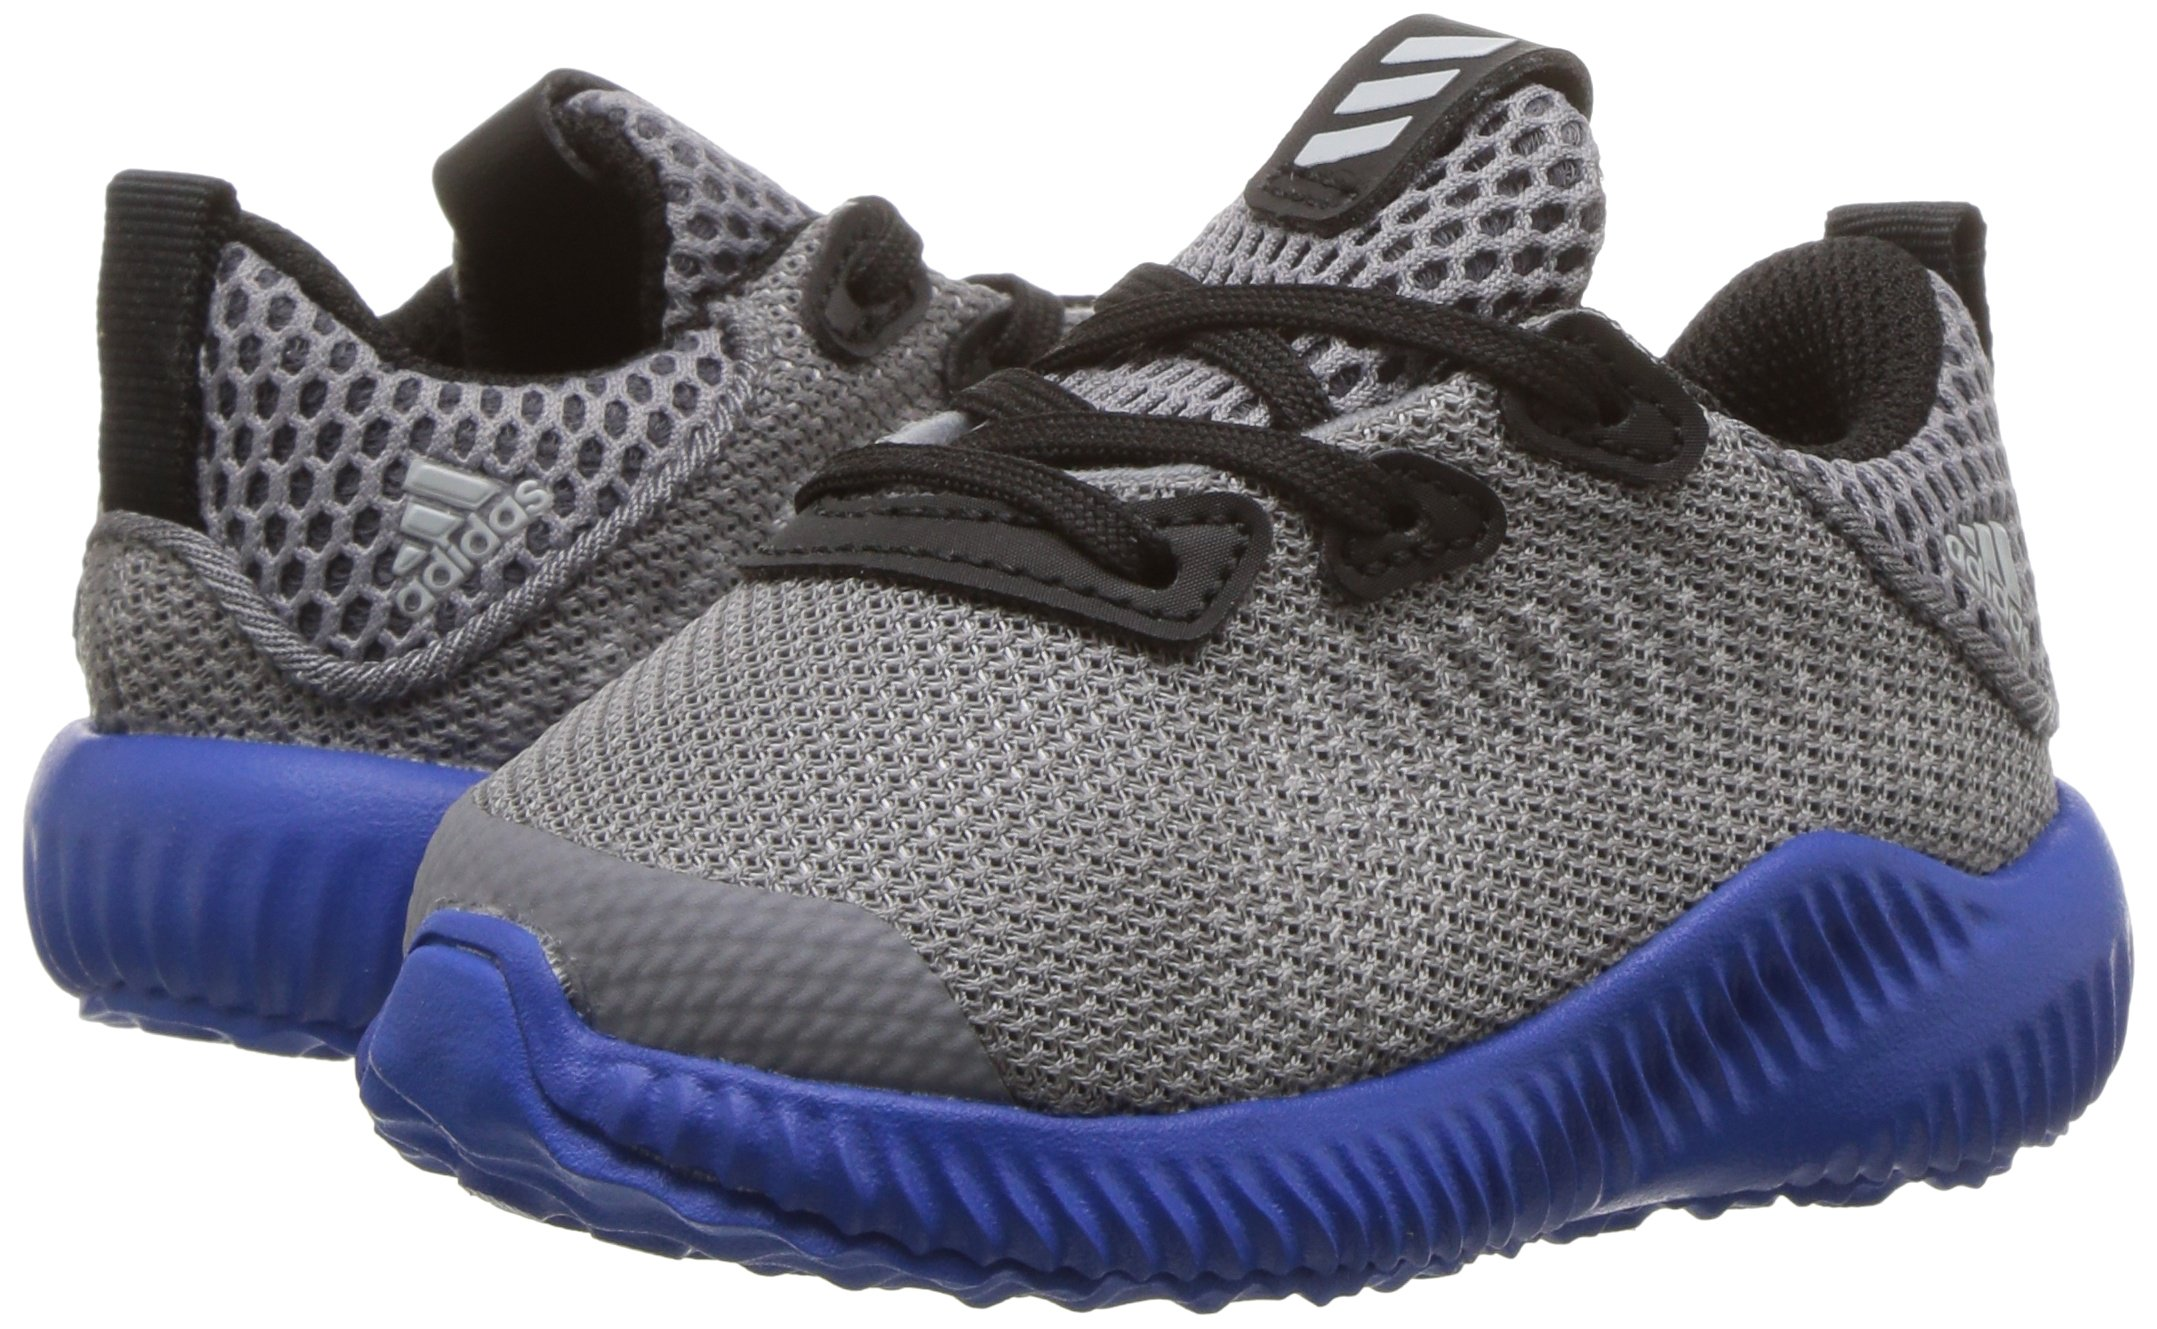 adidas Kids' Alphabounce Sneaker, Grey/Light Onix/Satellite, 7 M US Toddler by adidas (Image #6)